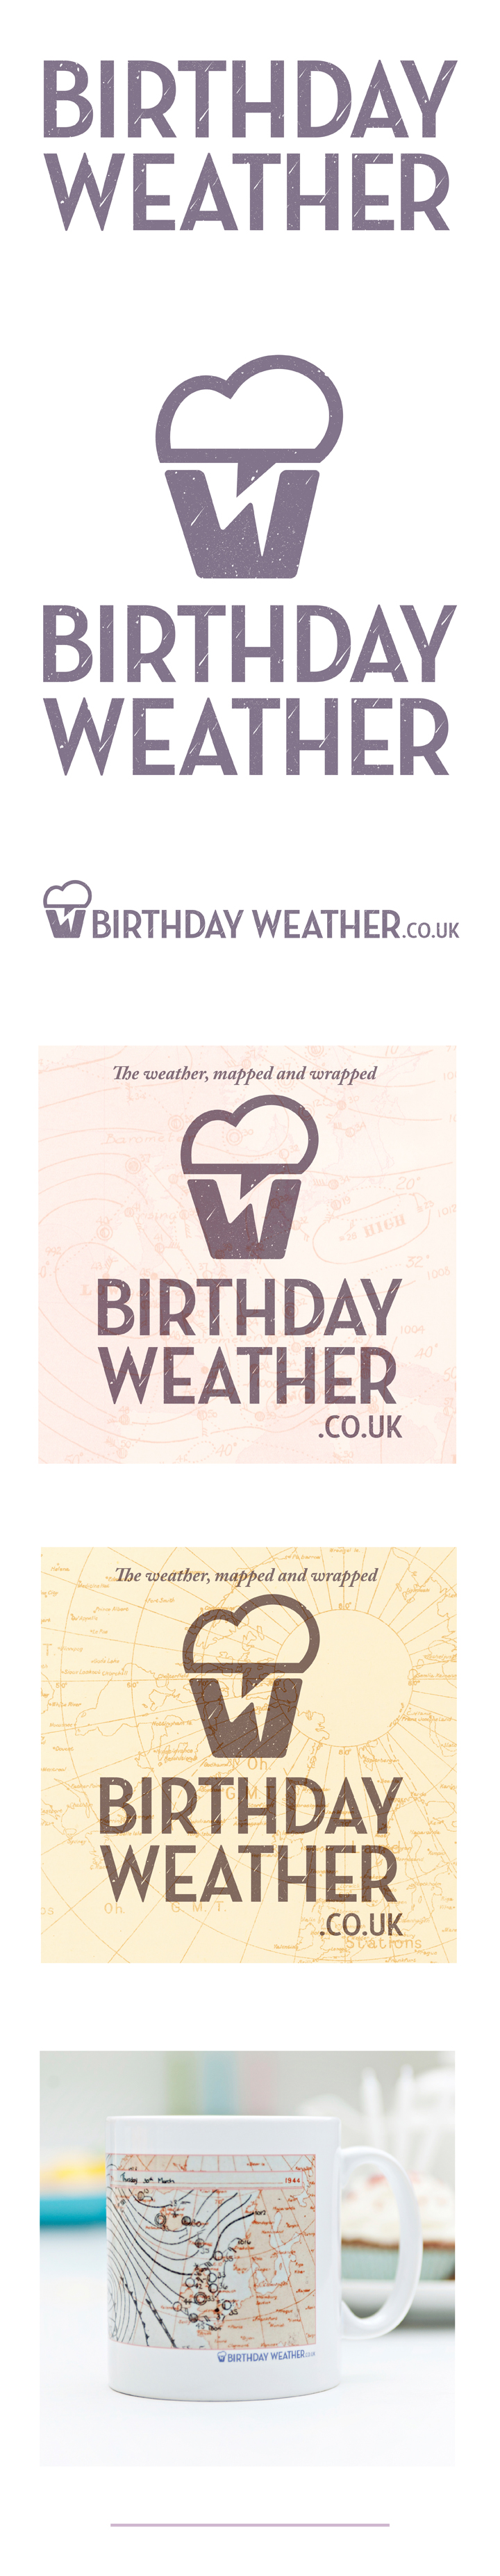 Birthday Weather Brand by Theory Unit Graphic Design and Website Development